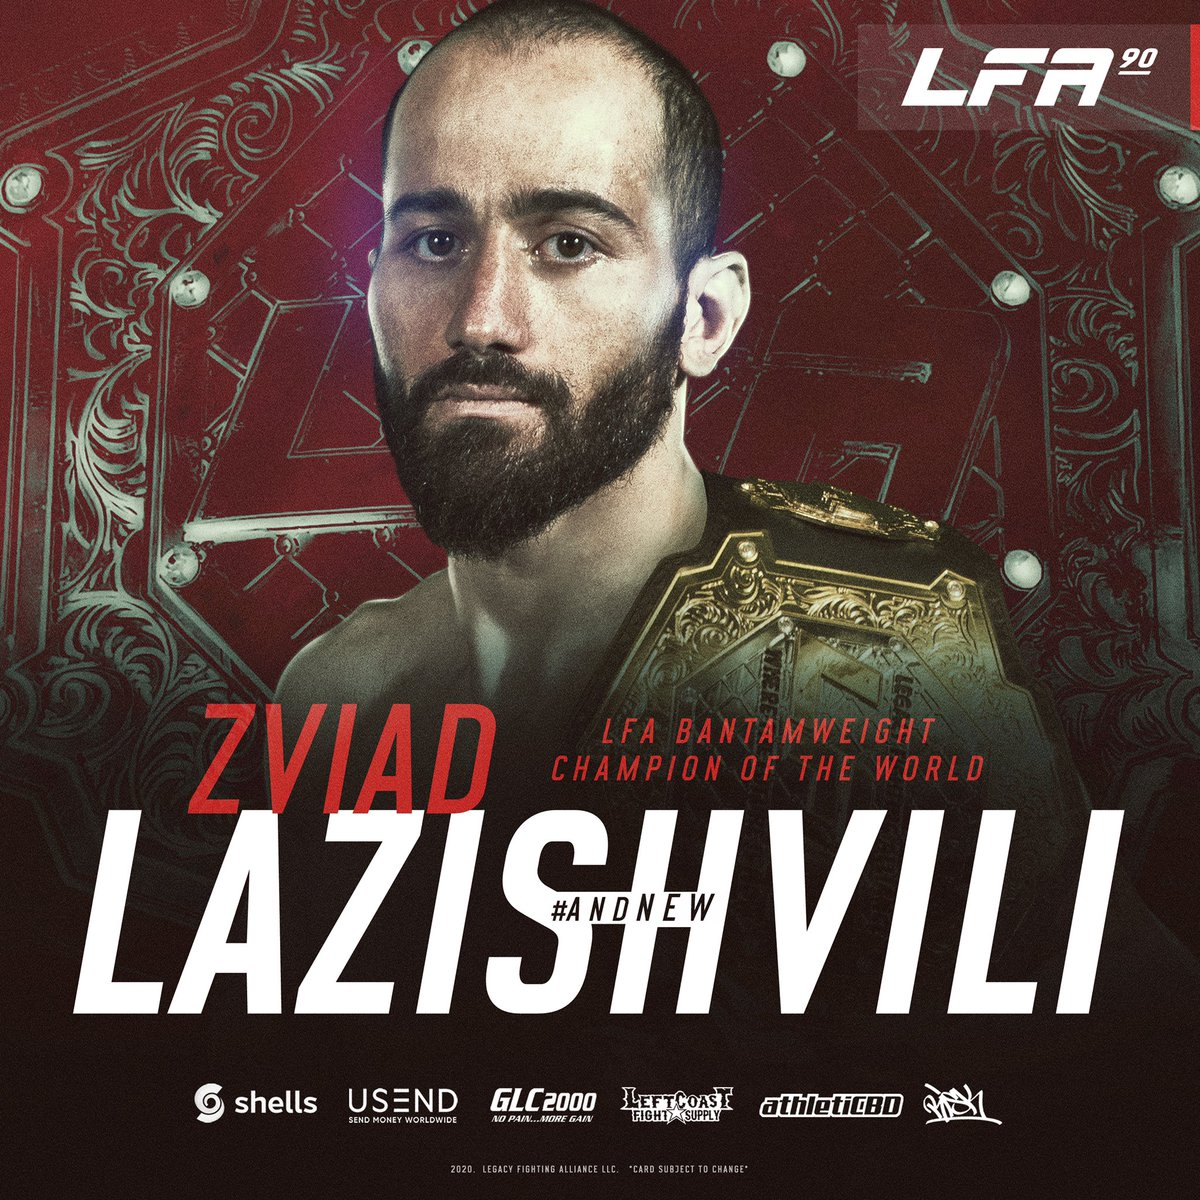 Congrats to @ZviadLazishvili on winning the @LFAfighting #bantamweight title in the main event of #LFA90! 👑  #andNEW  #MMA #LFANation @UFCFightPass https://t.co/a0ls1I3m5y